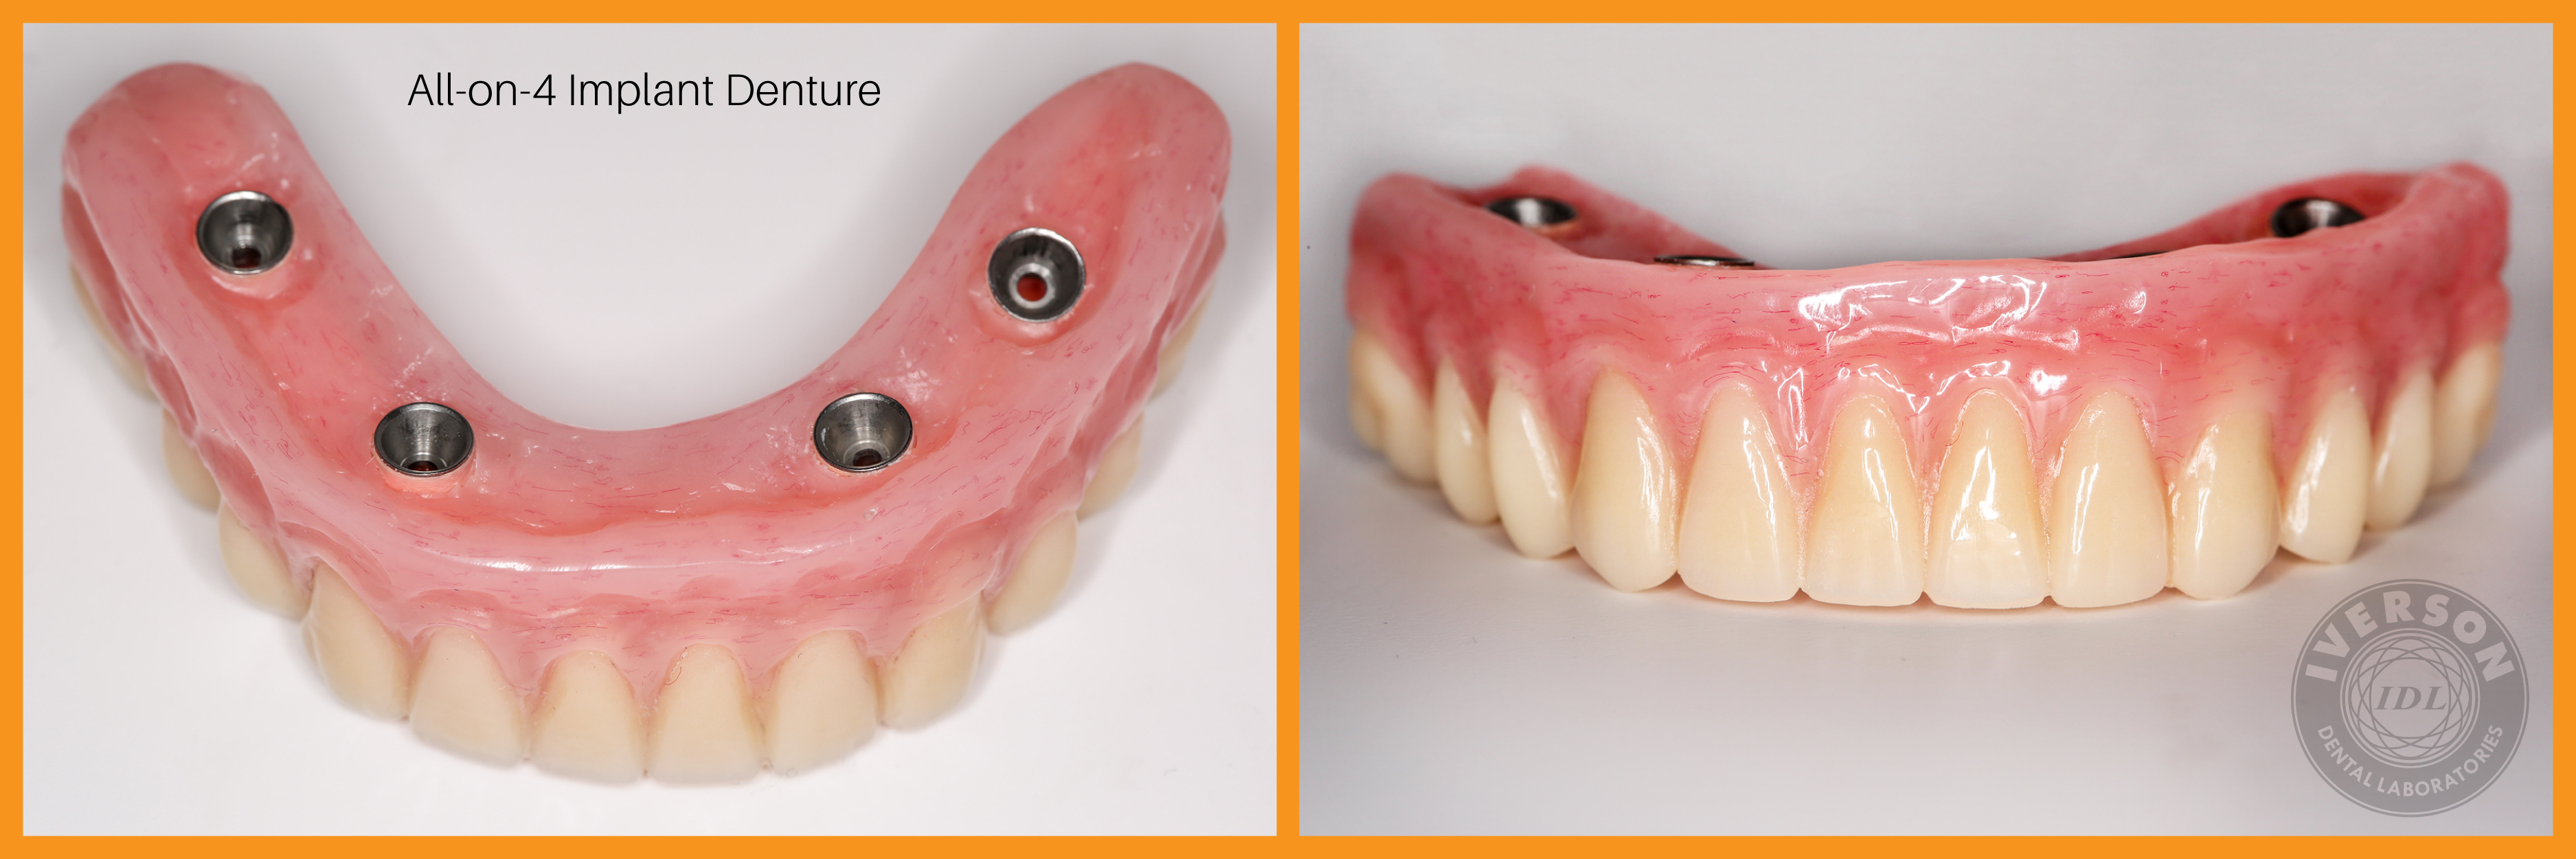 Metal-free trinia allows for lightweight implant dentures